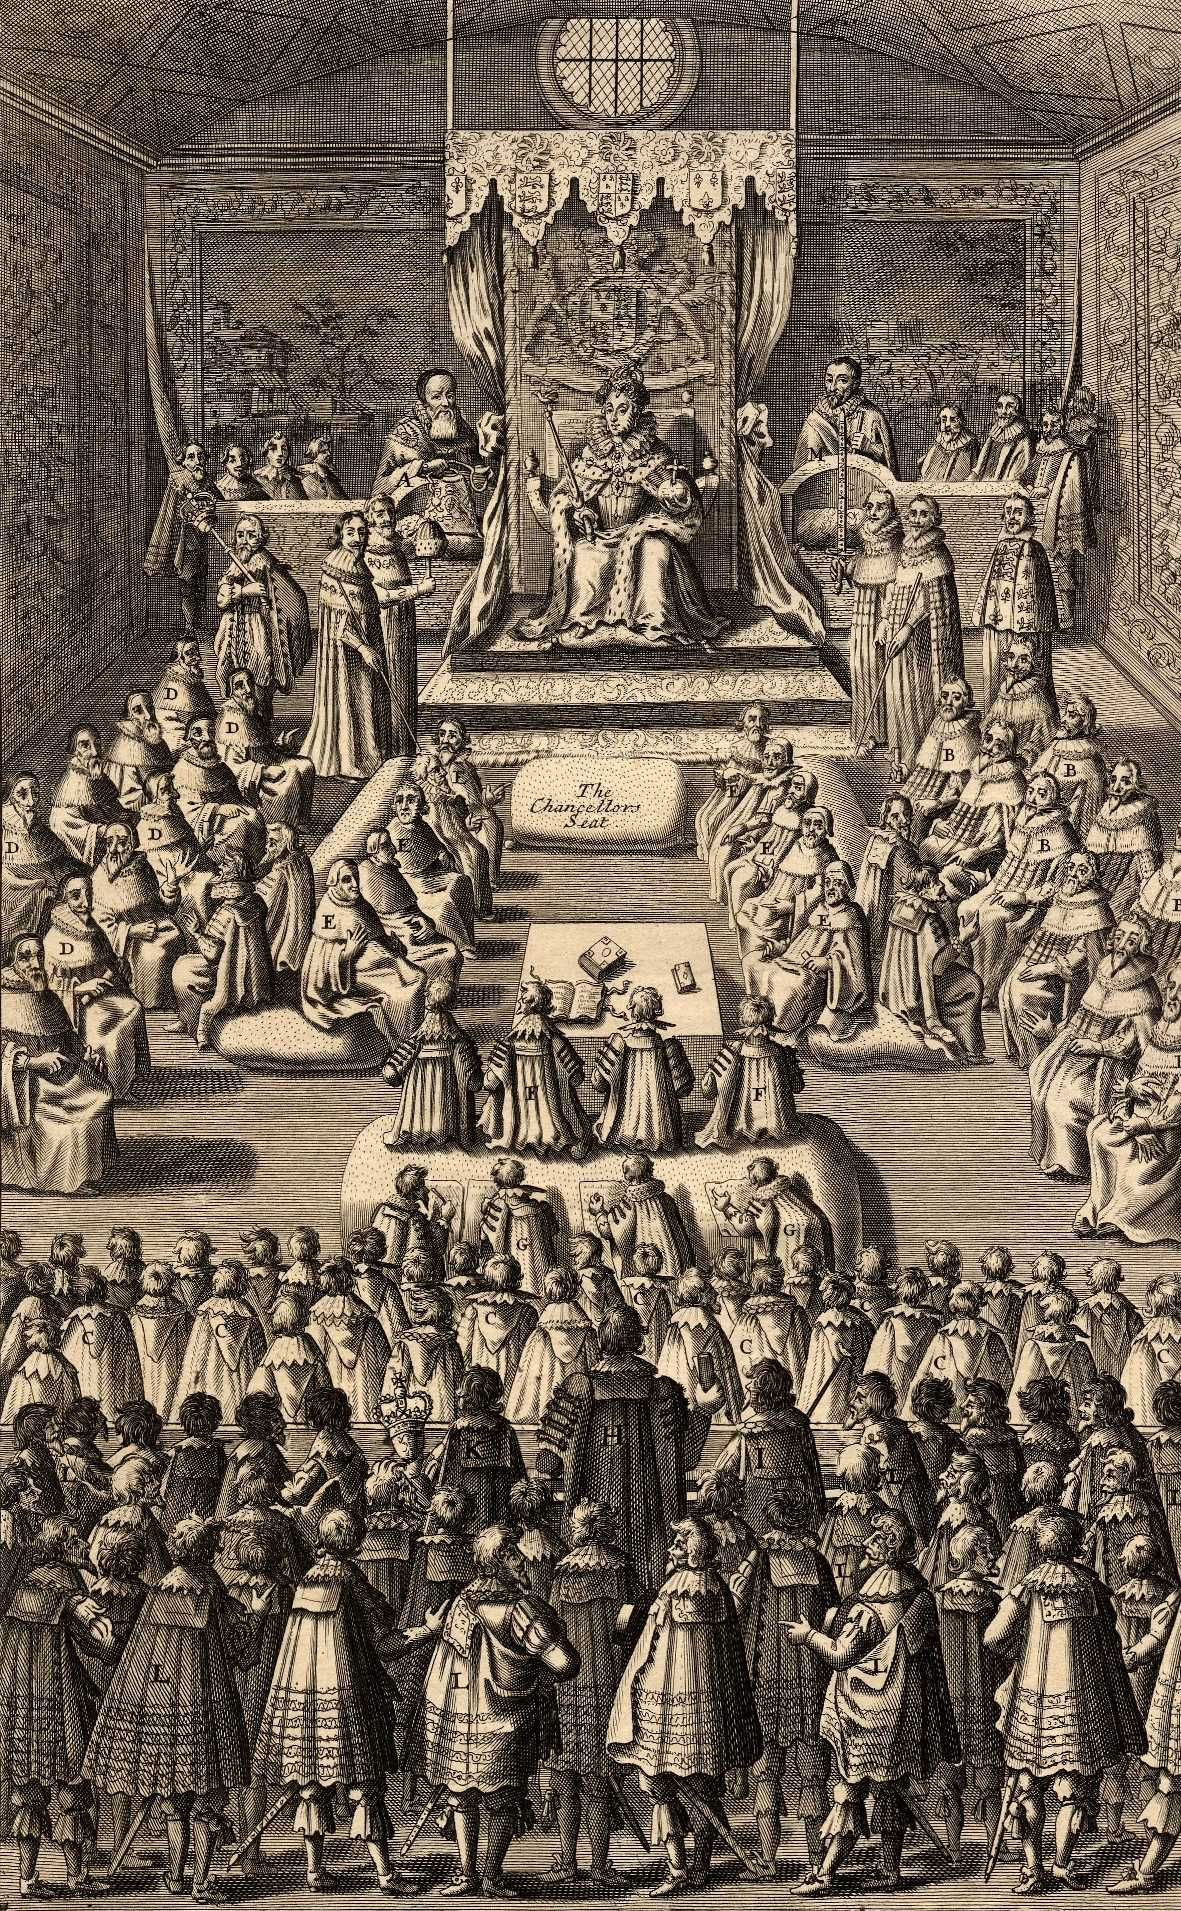 January 25th 1559 Elizabeth I S First Parliament Met